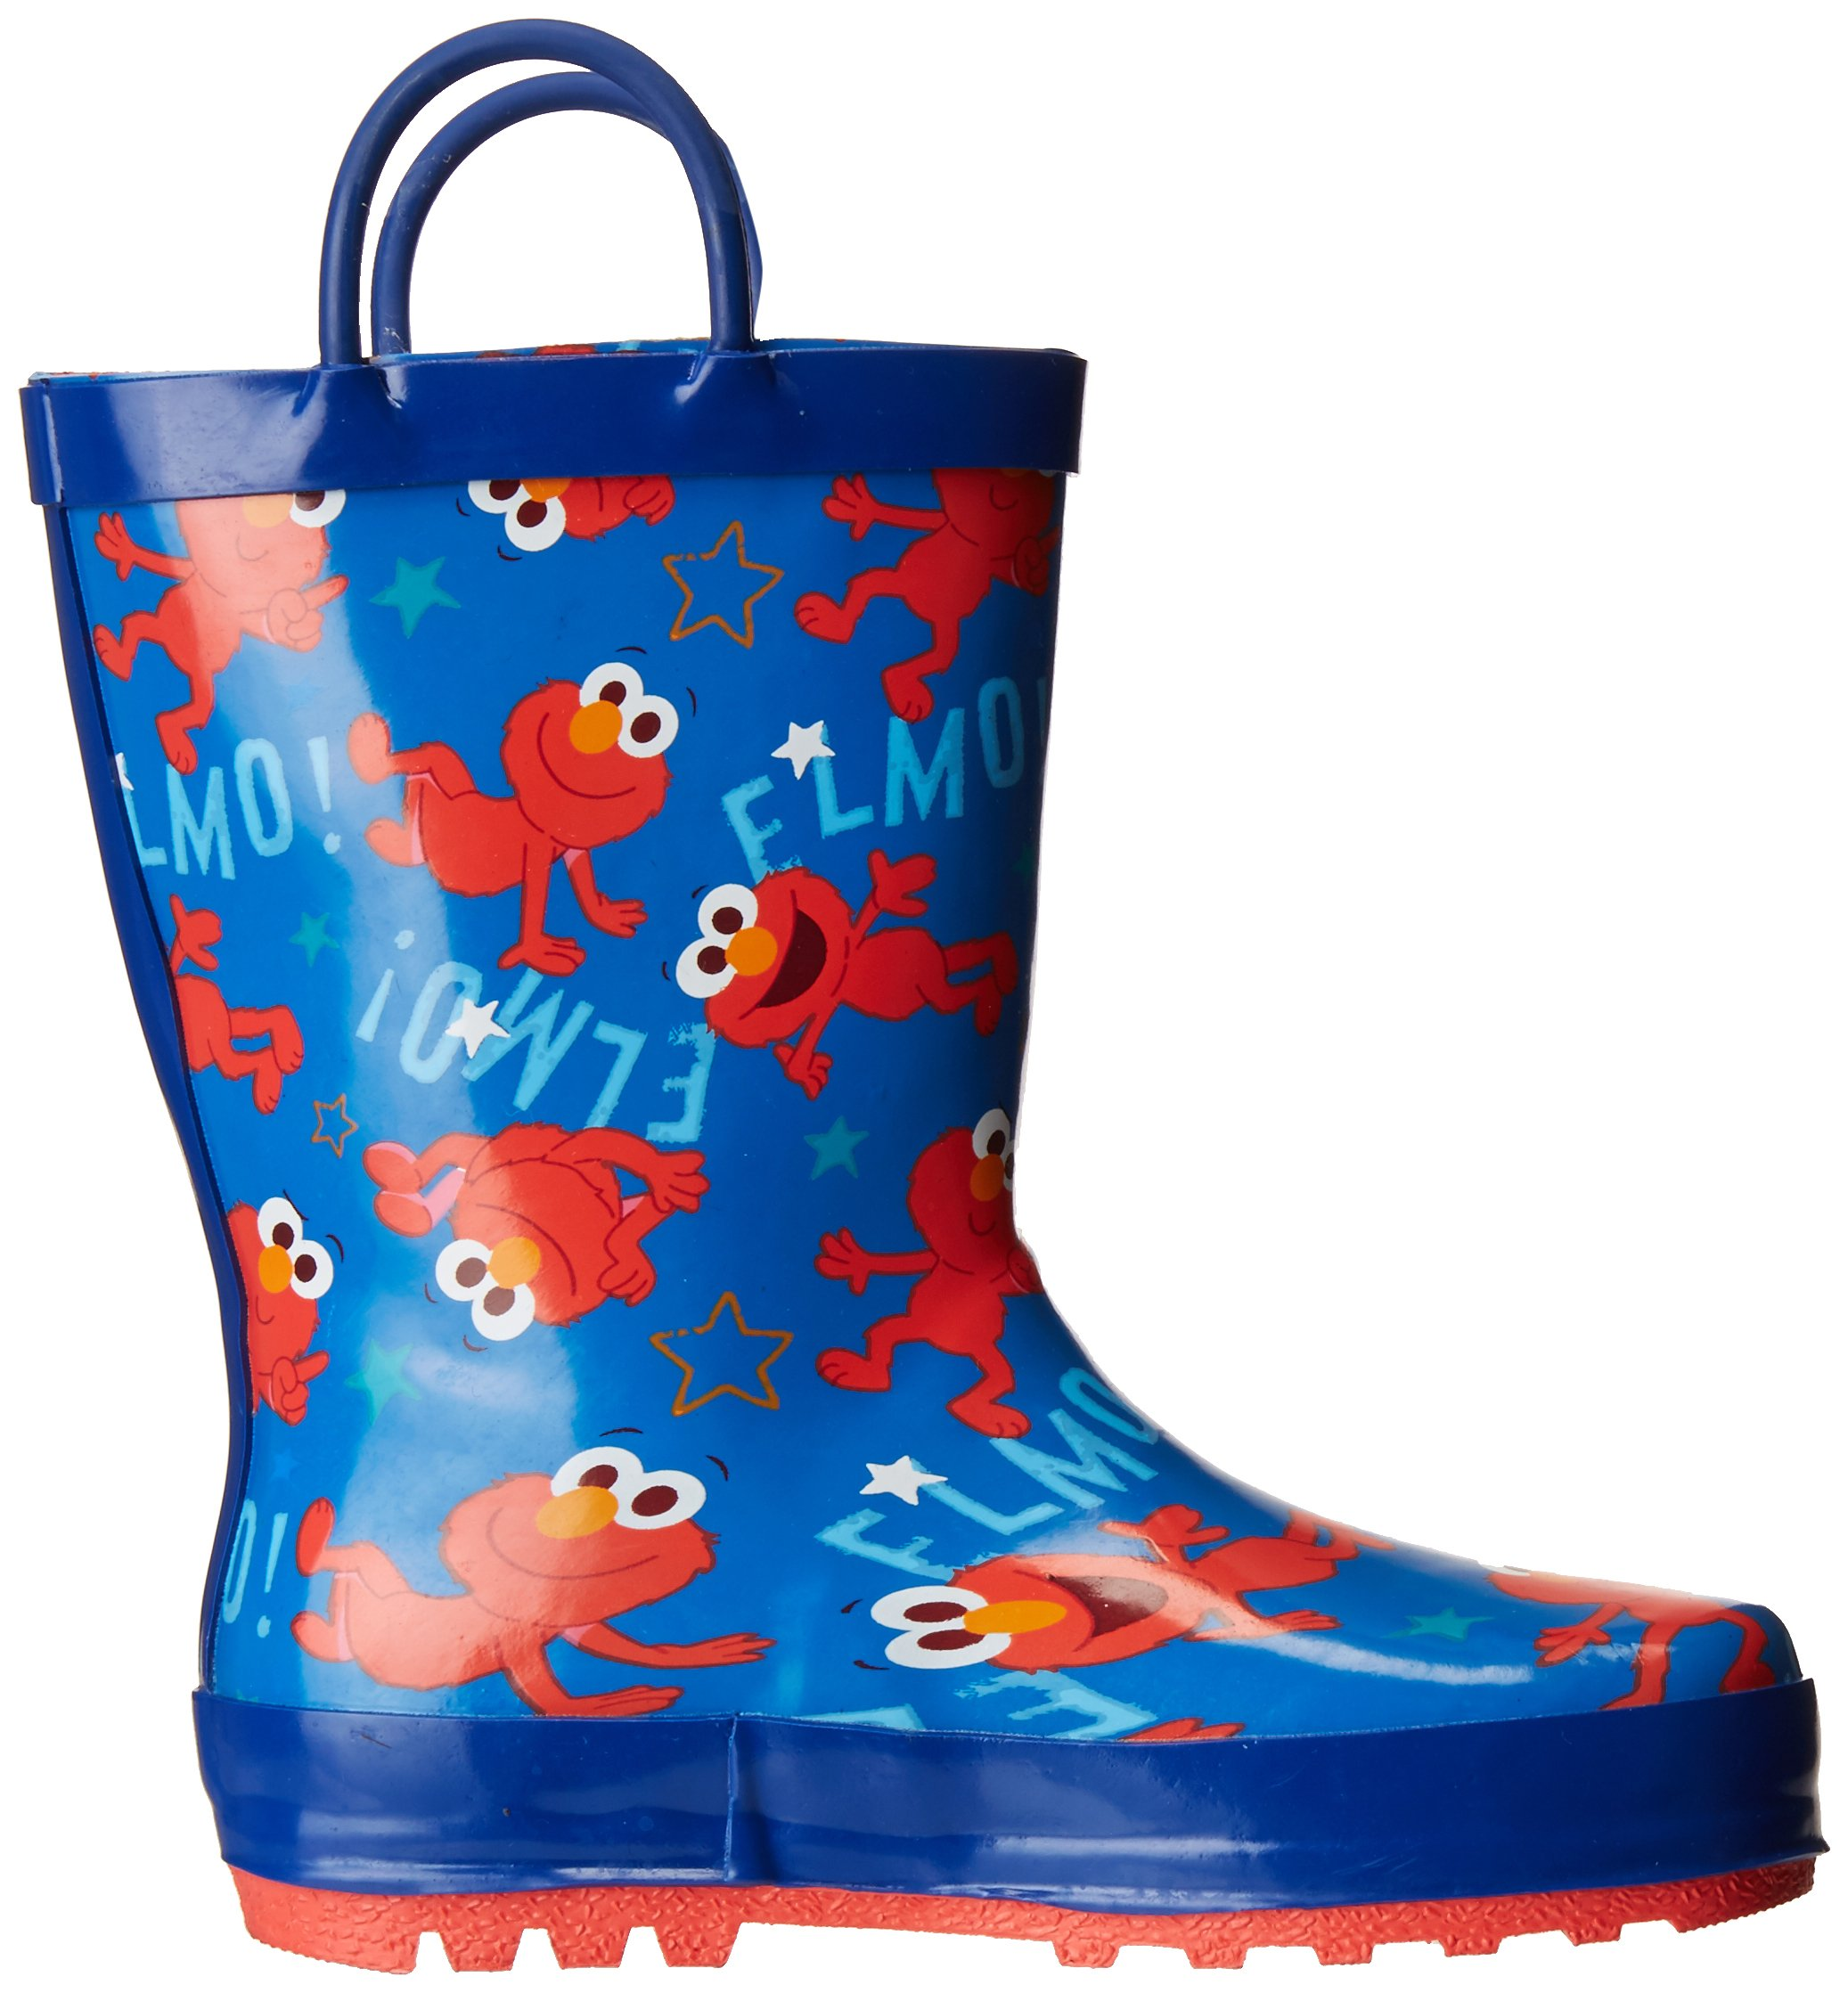 Sesame Street Boys' Kid's Character Licensed Rain Boot, Blue, Dual Shoe Size 7/8 Child US Toddler by Sesame Street (Image #7)